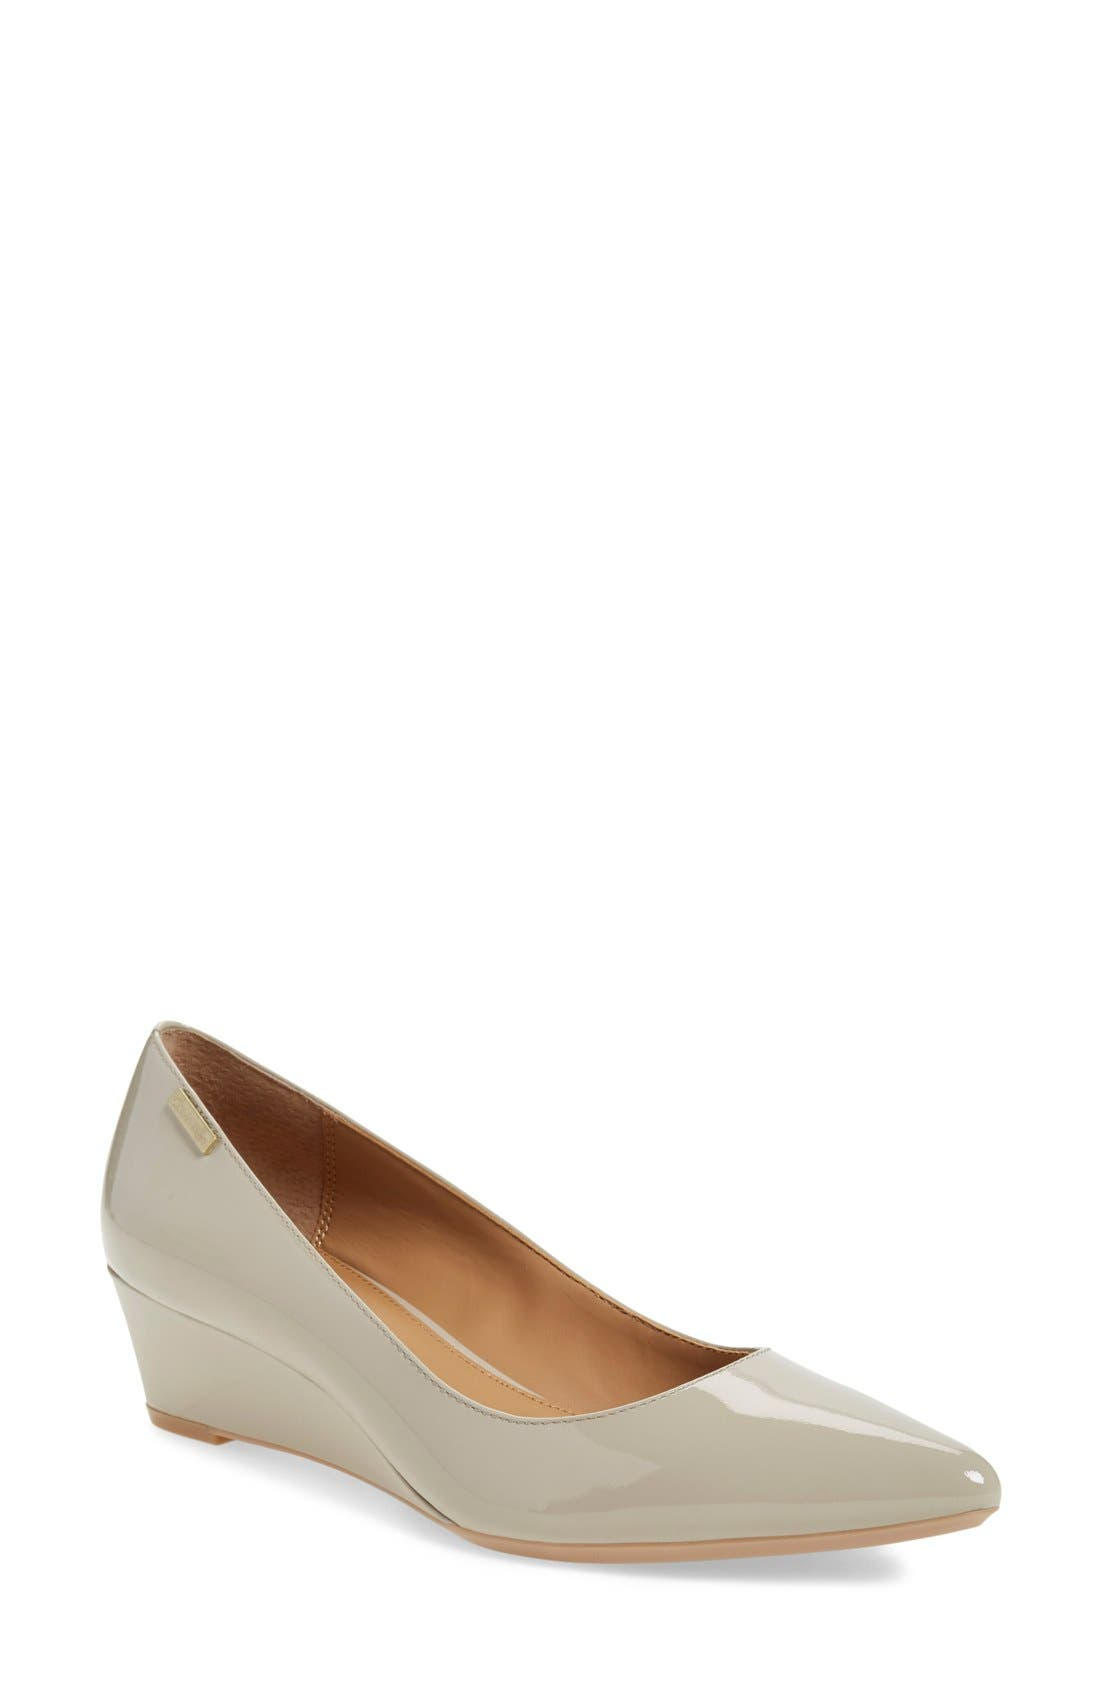 CALVIN KLEIN 'Germina' Pointy Toe Wedge